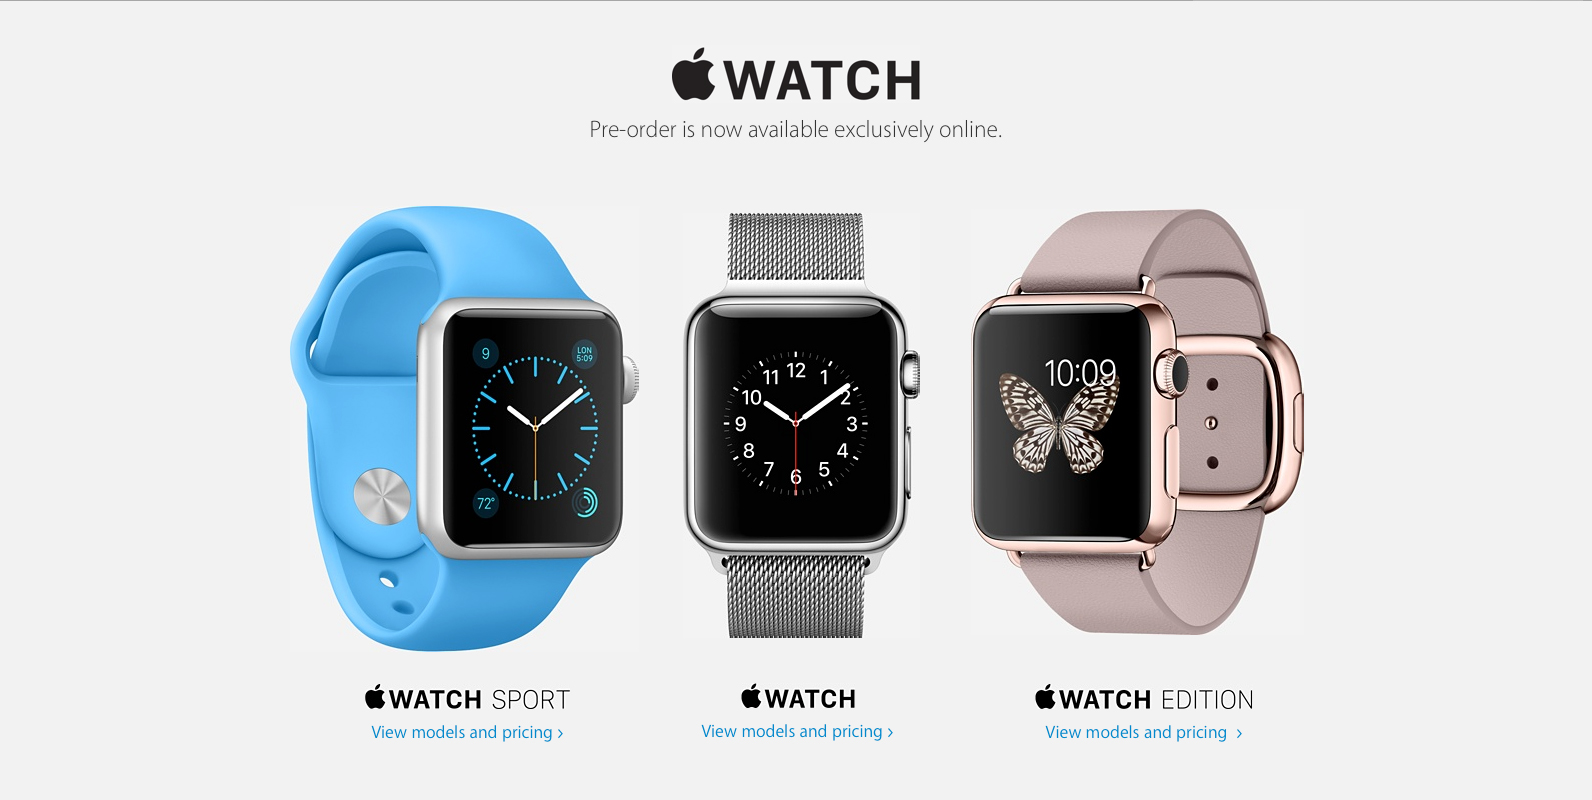 Update: Some Apple Watch orders could arrive earlier than expected